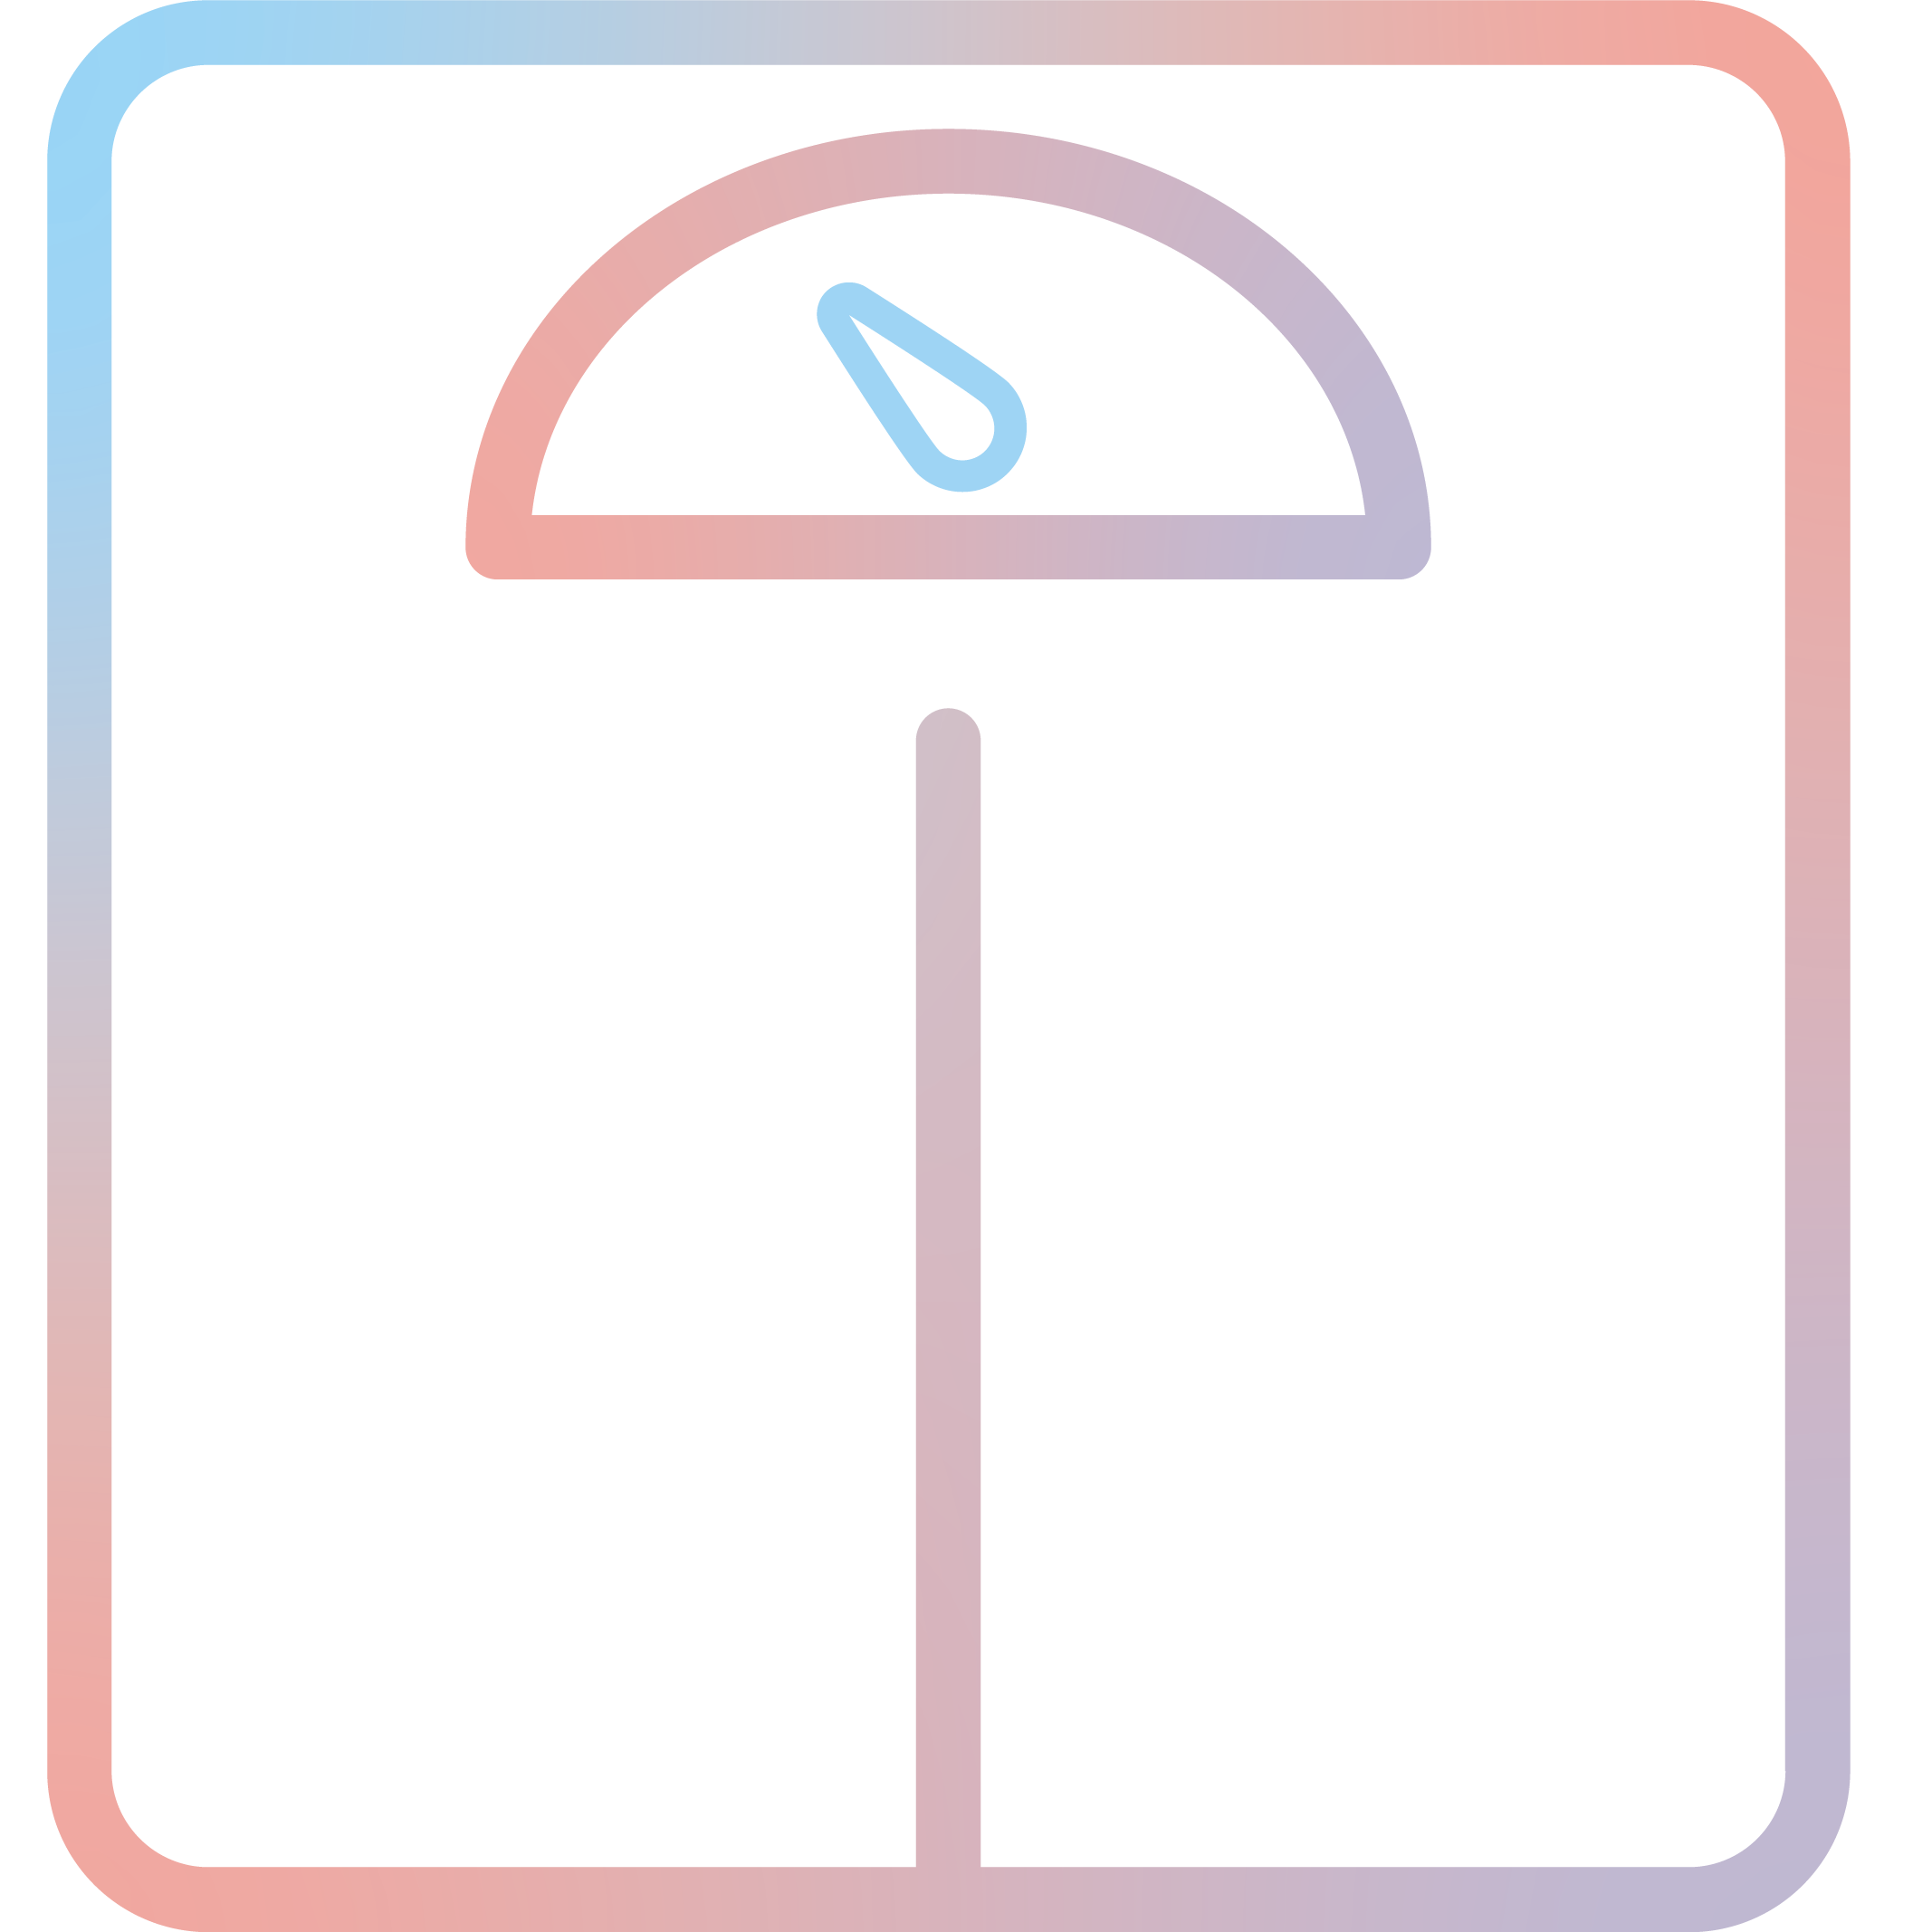 Light and compact Icon